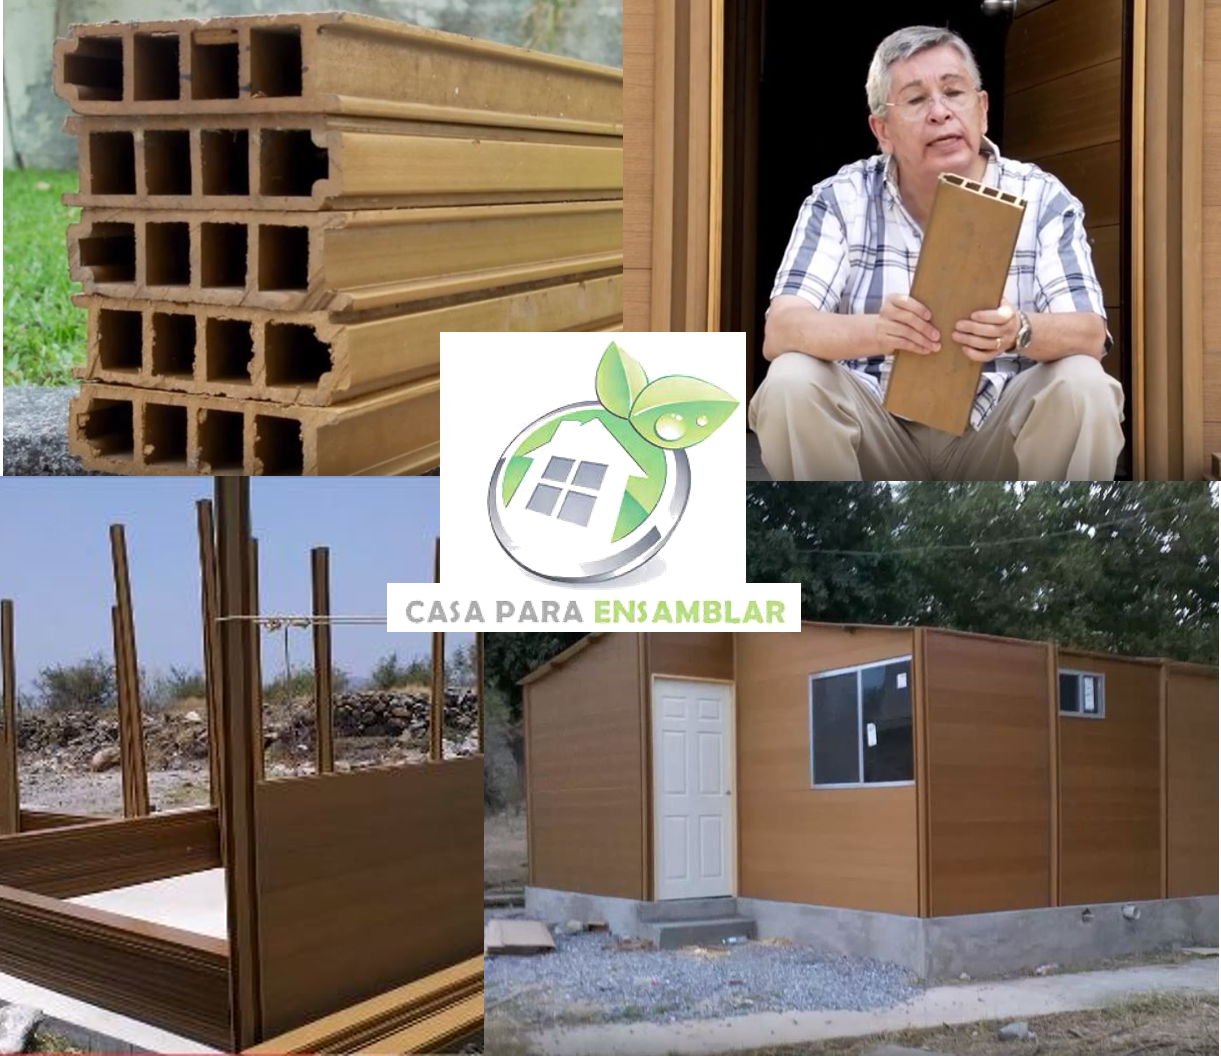 Sustainable Housing for All